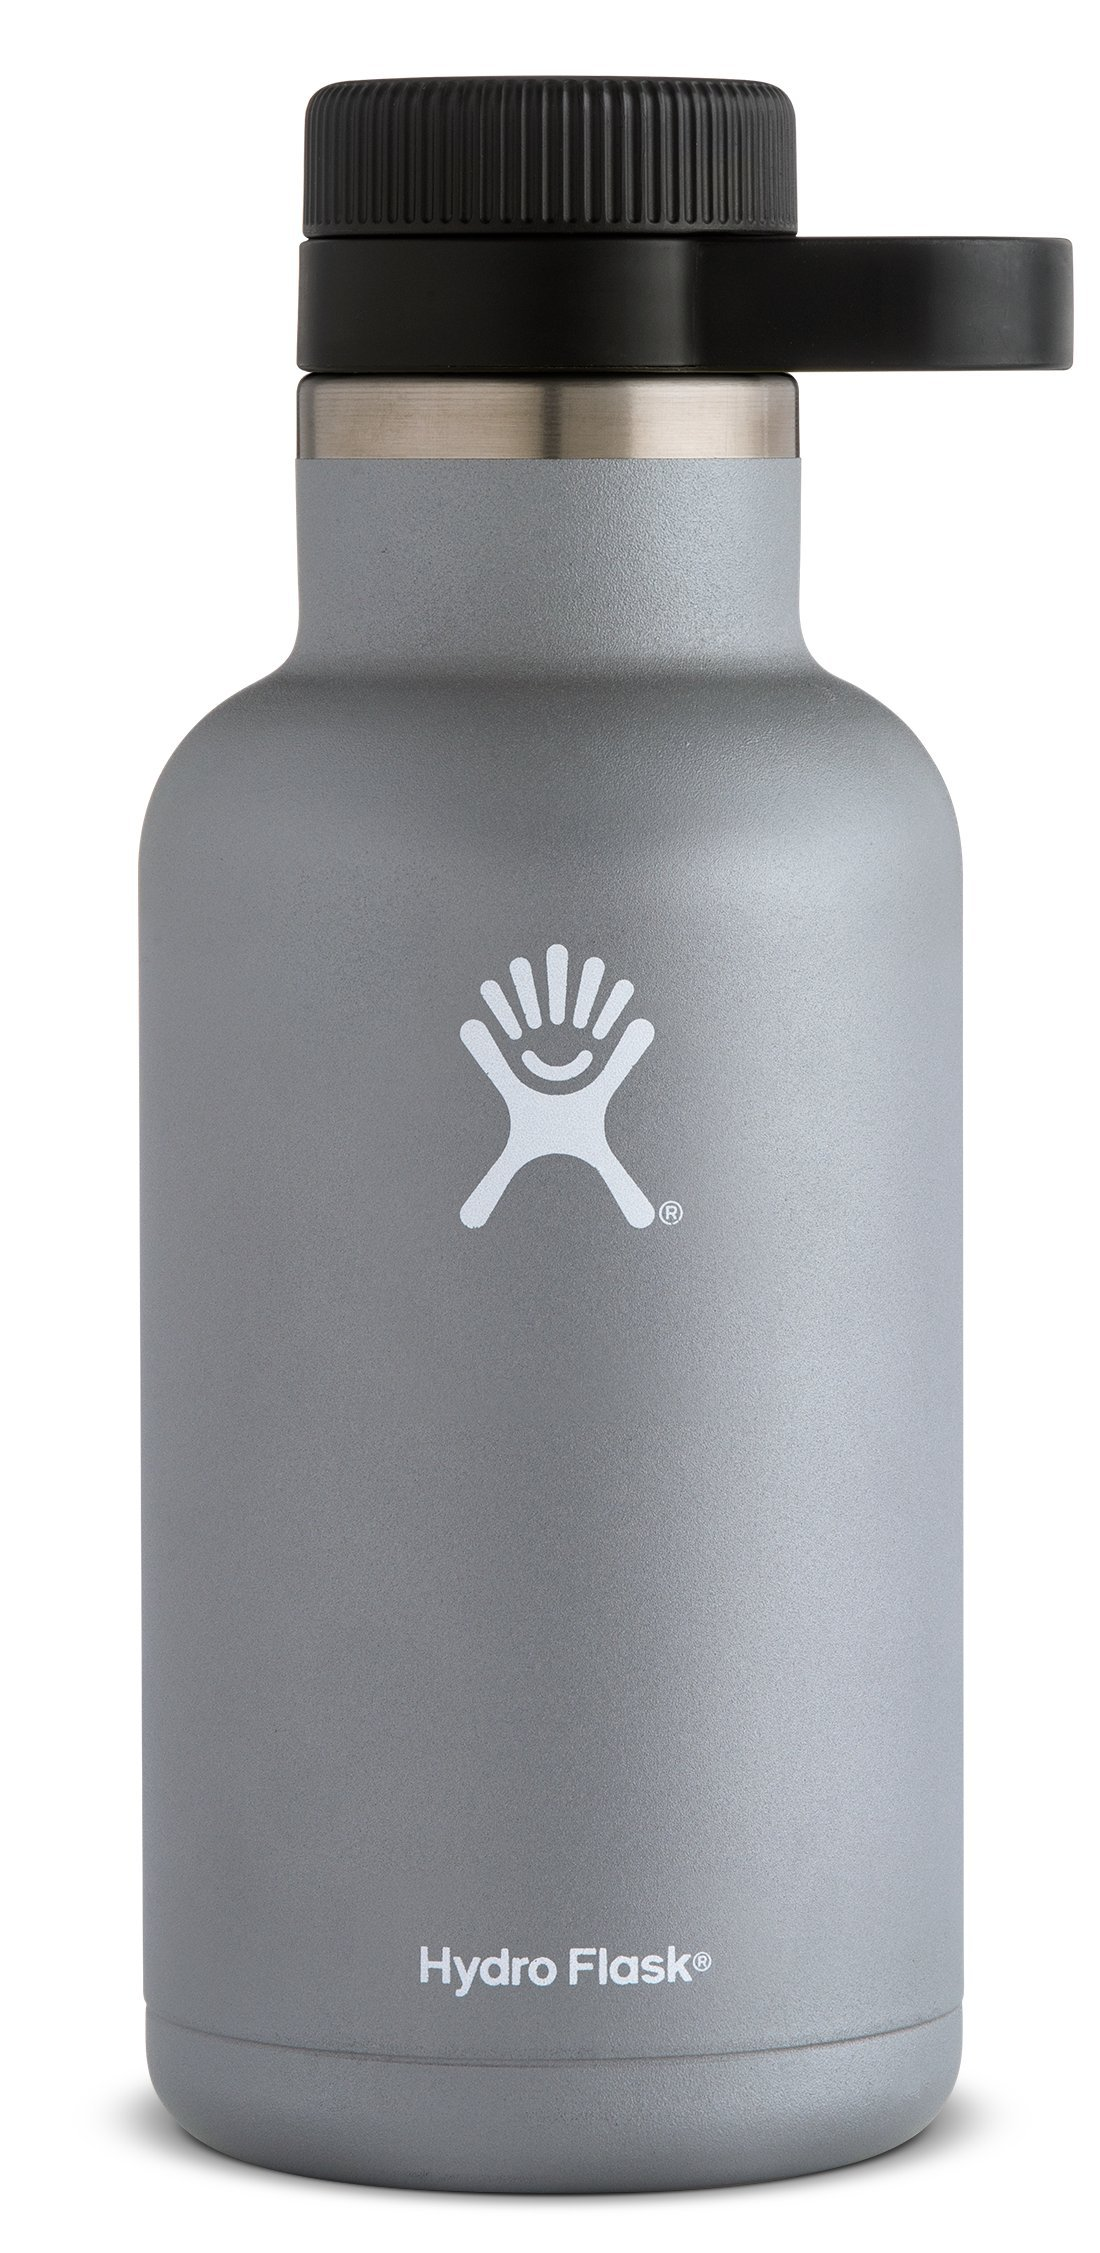 Hydro Flask 32 oz Double Wall Vacuum Insulated Stainless Steel Beer Howler, Graphite